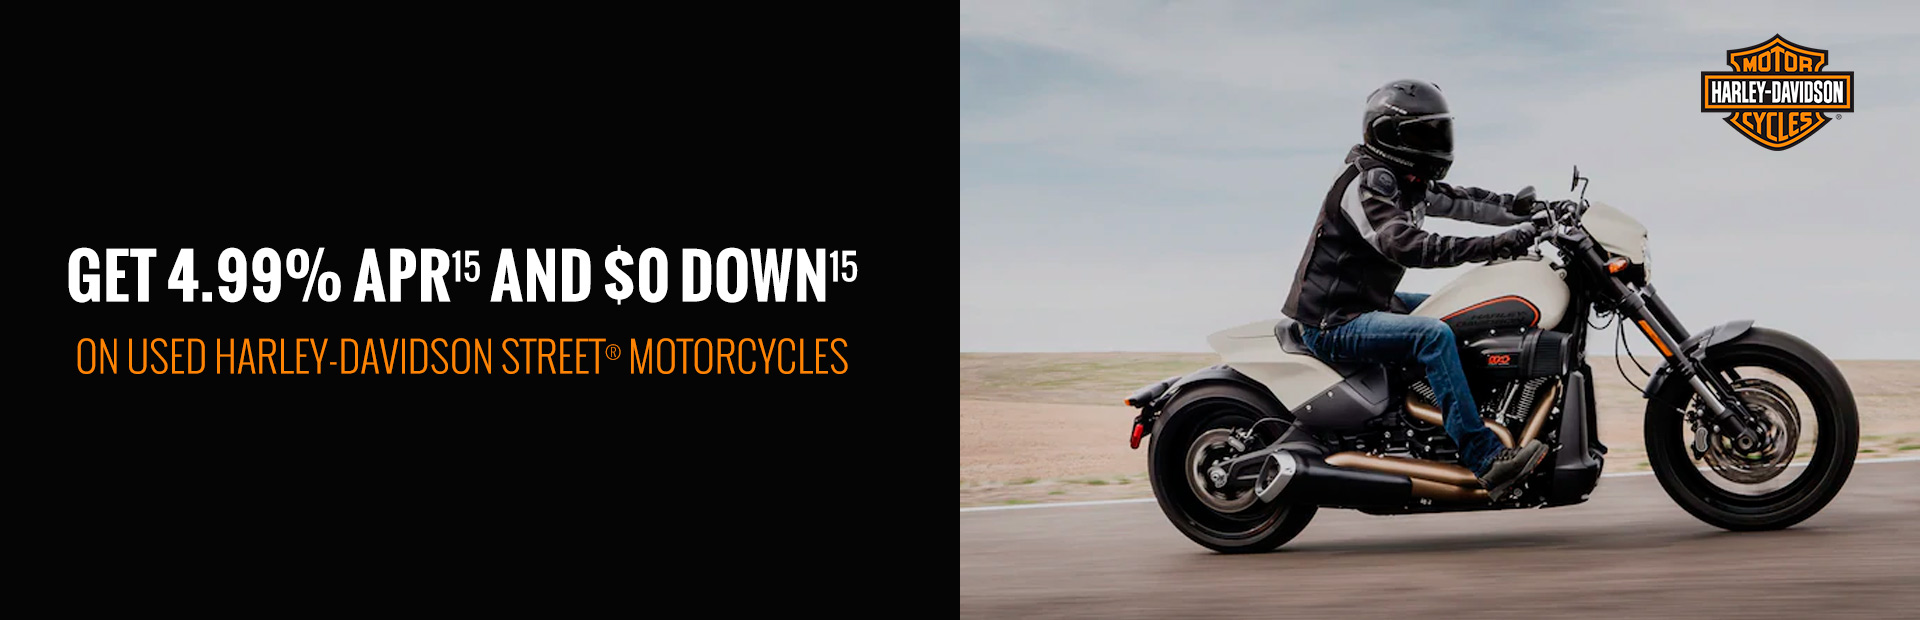 Harley-Davidson®: GET 4.99% APR & $0 DOWN ON USED STREET